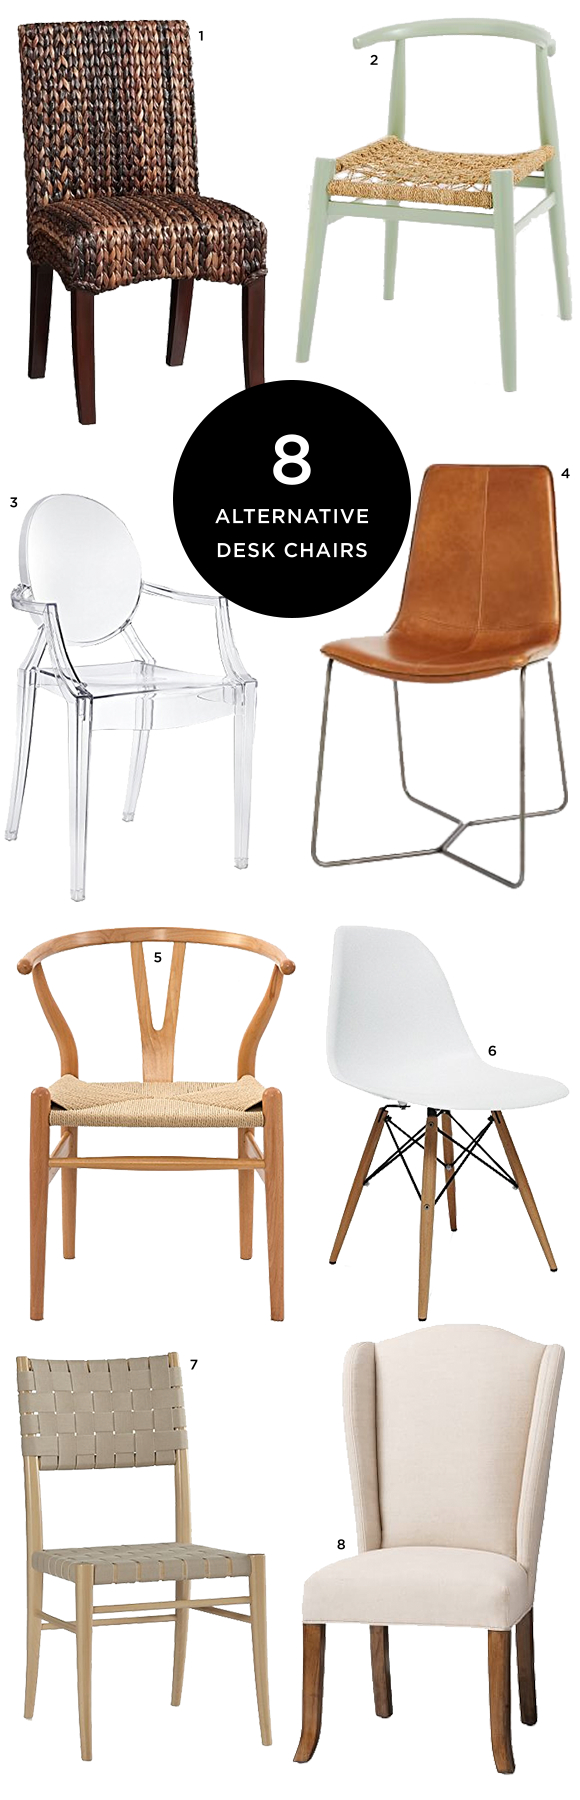 8 Alternative Desk Chairs for the Stylish Office —via @TheFoxandShe